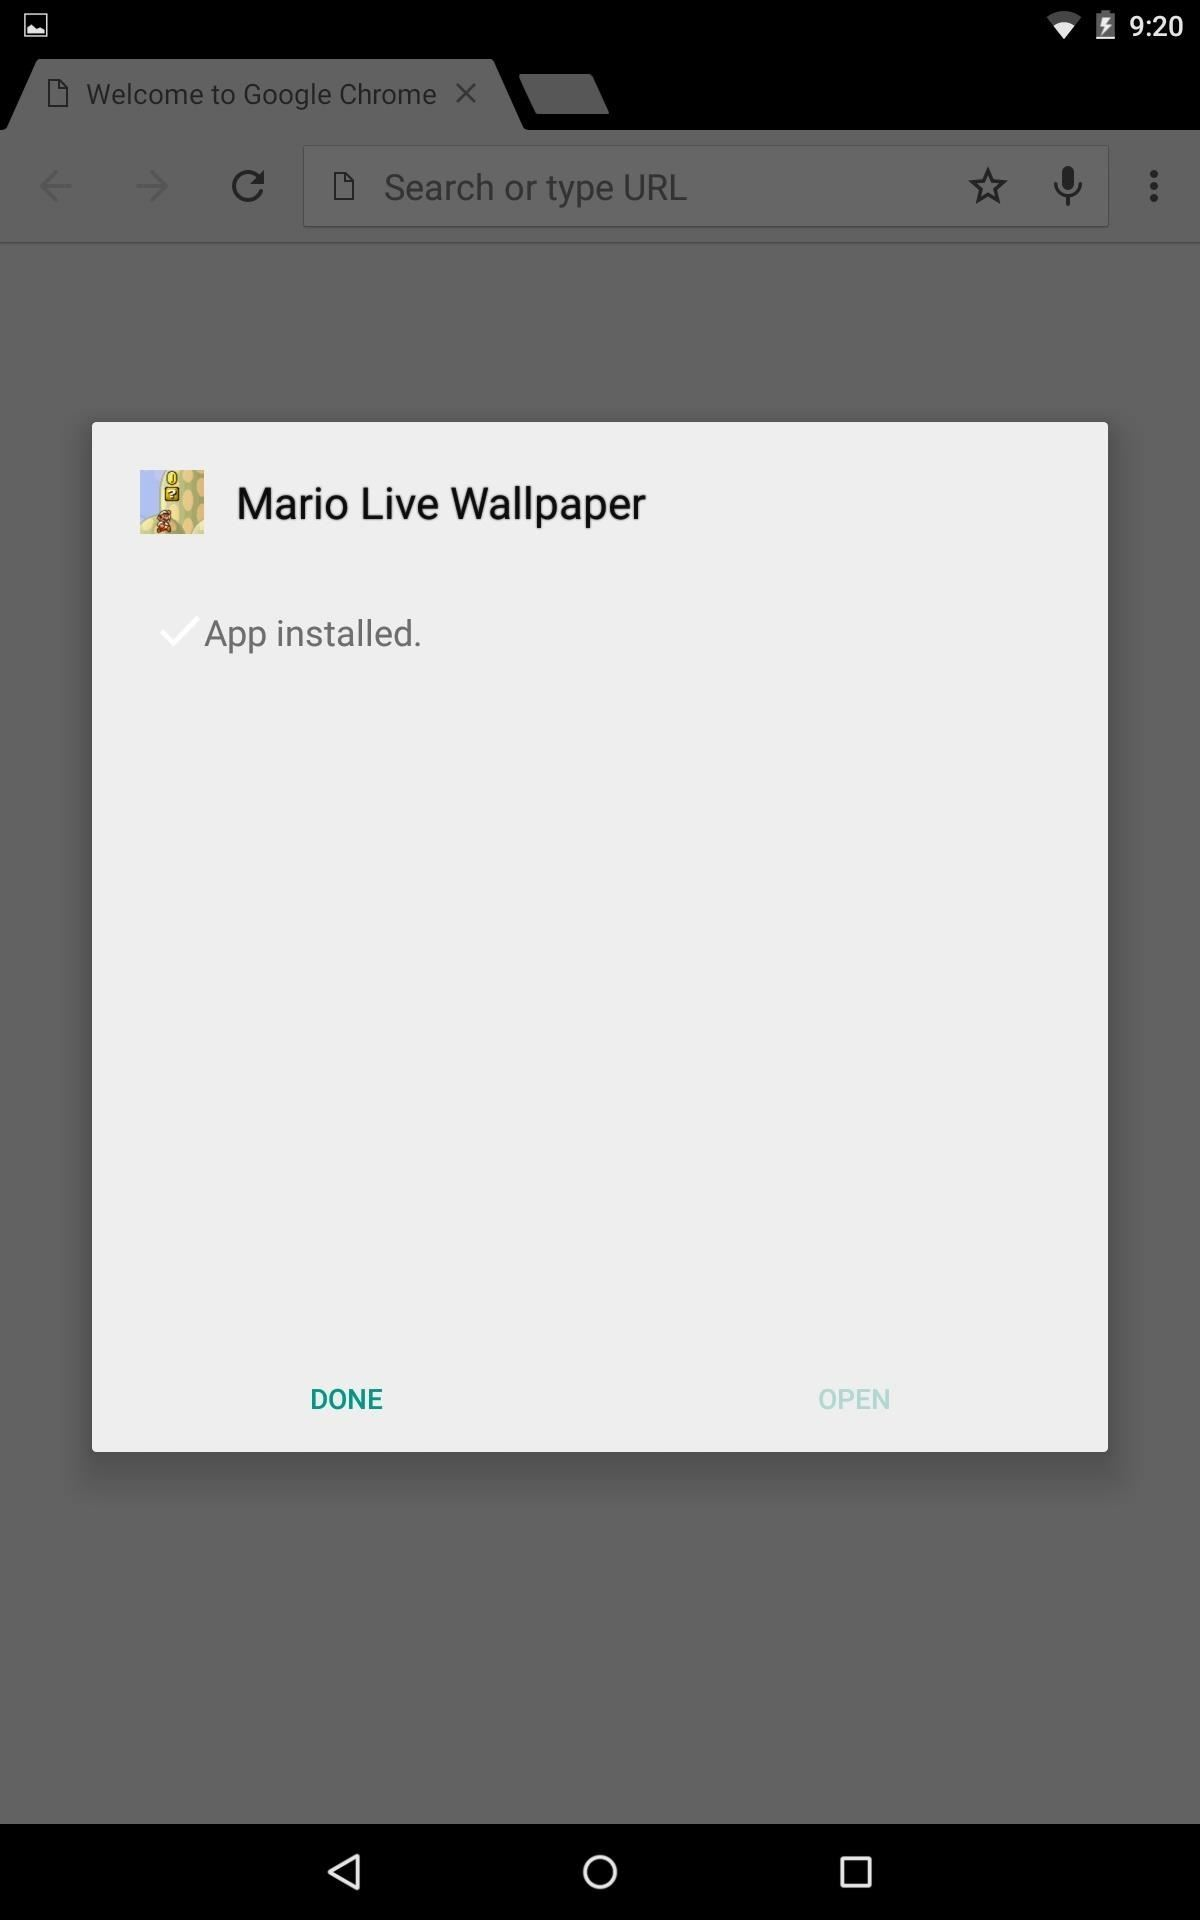 Mario Live Wallpaper: Classic Side-Scrolling Action for Your Home or Lock Screen